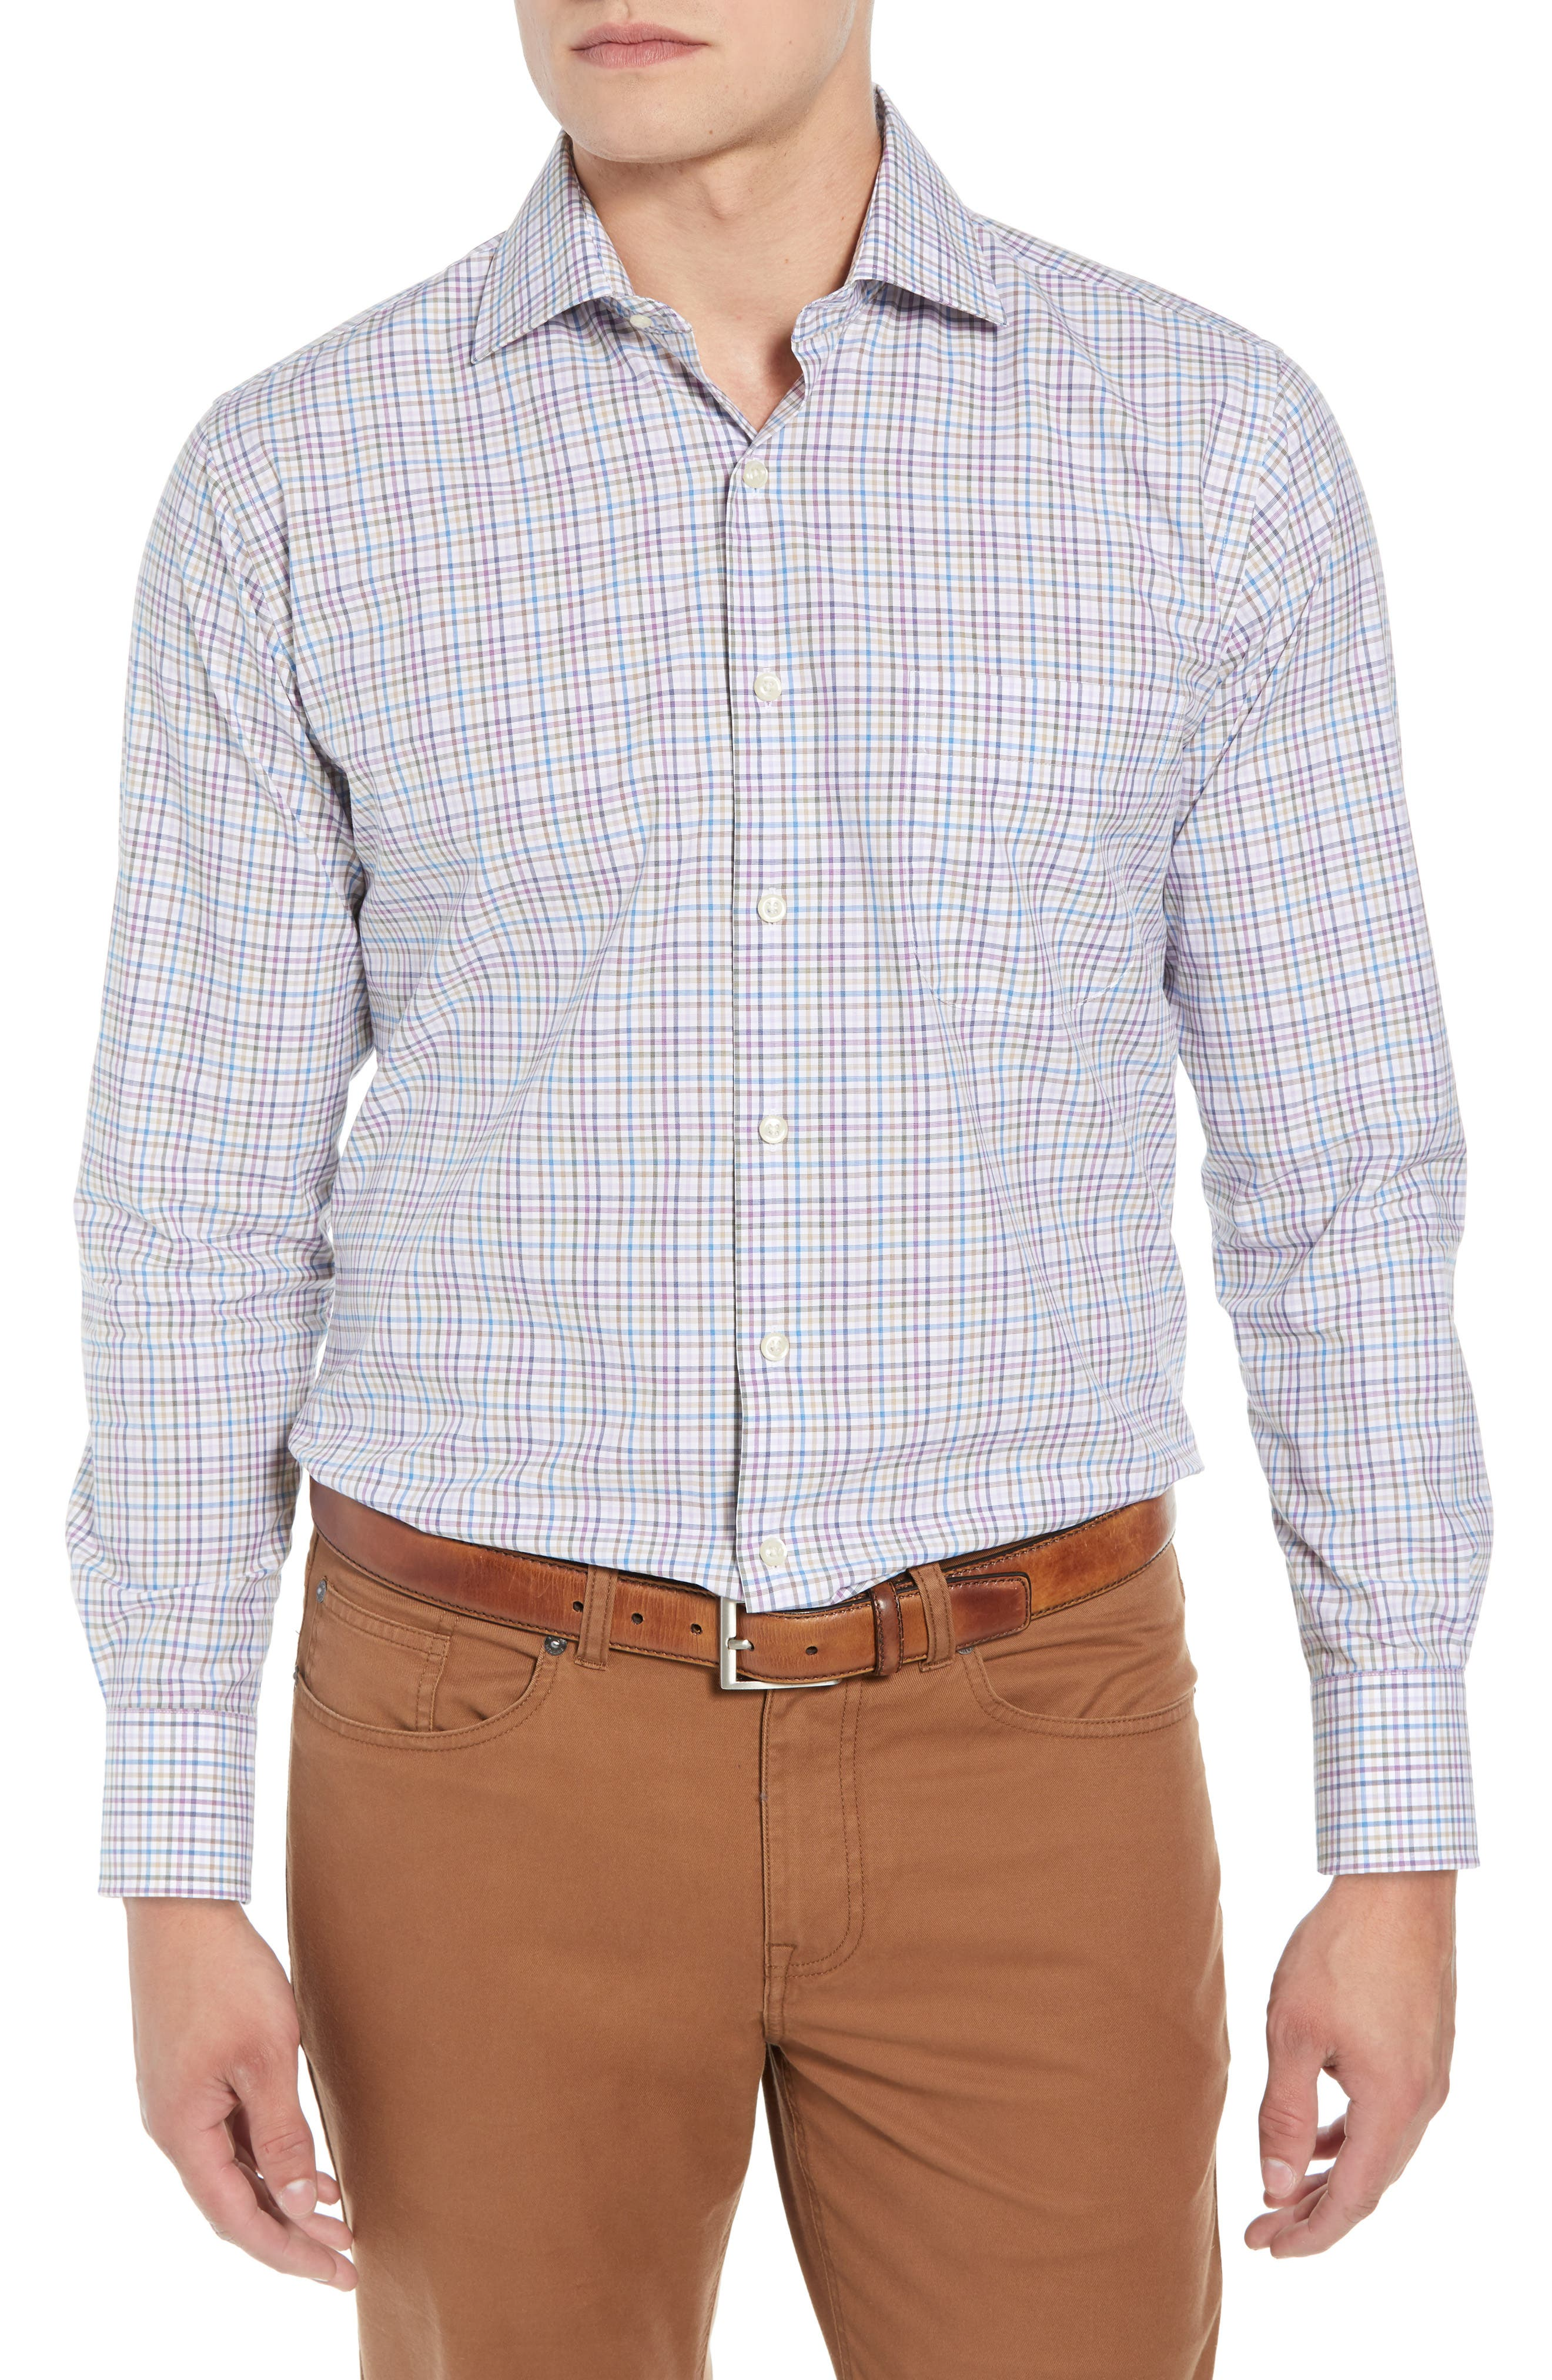 Whittier Heights Check Sport Shirt,                         Main,                         color, BEET